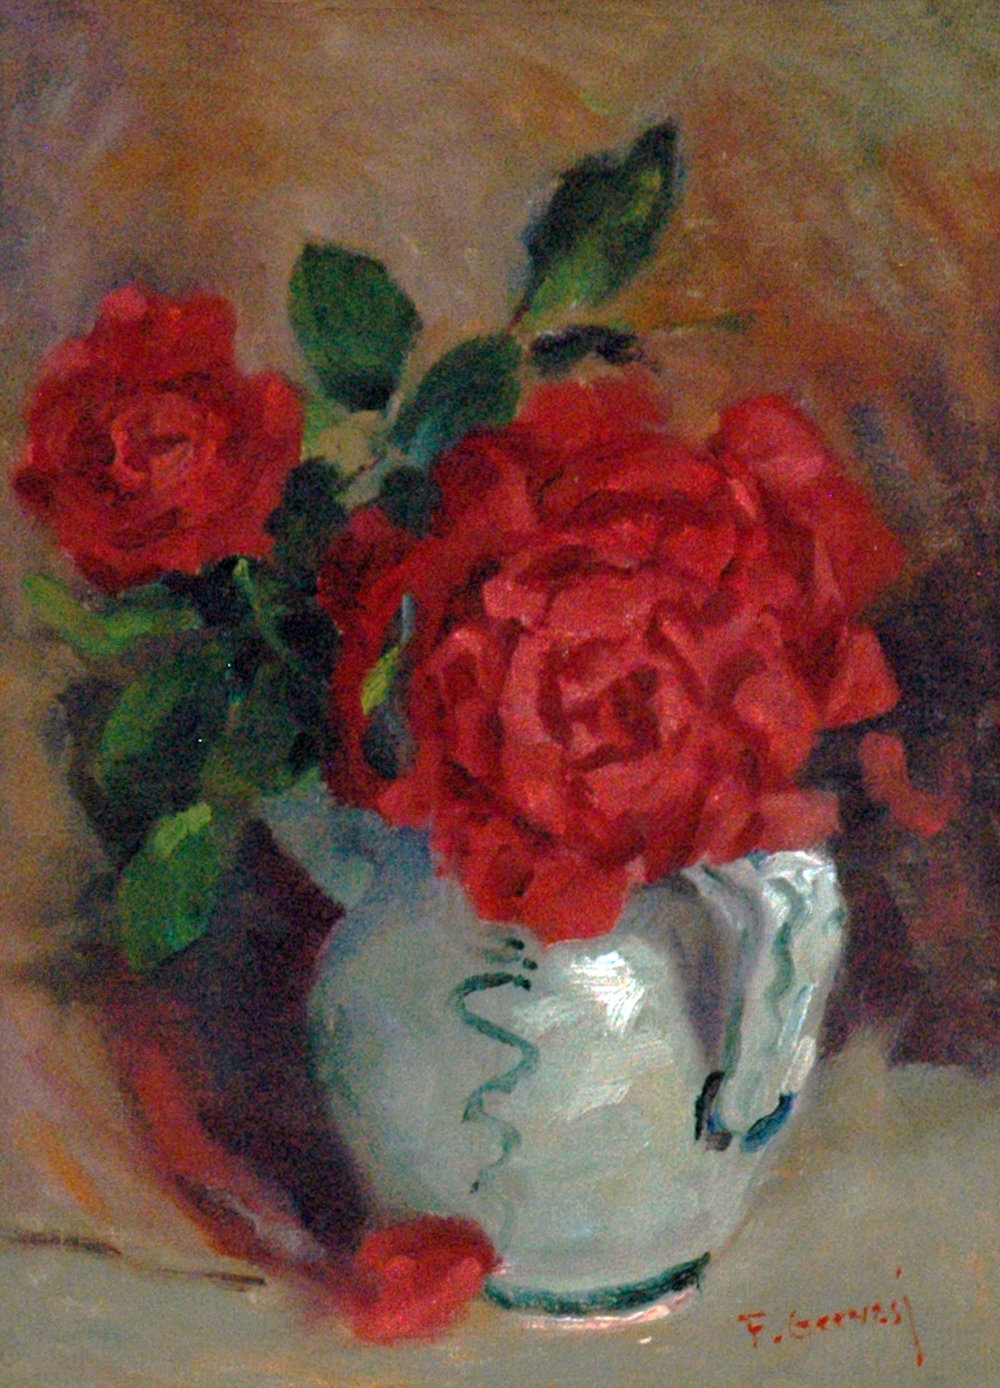 Red Roses in White Vase, 12 x 9, oil on canvas